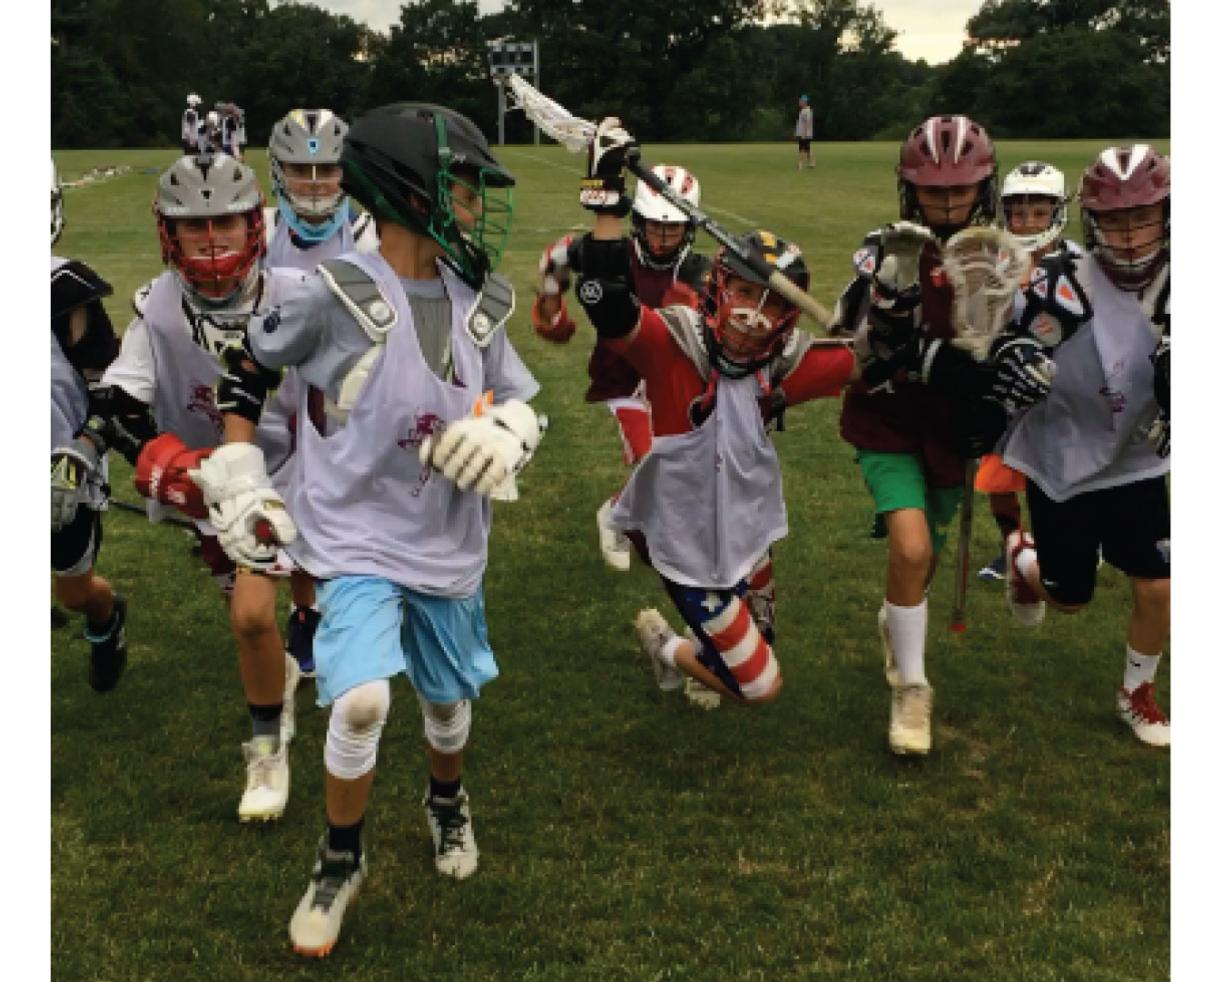 $40 Off Millon Lacrosse Summer Camp at Park School in Baltimore or Epicopal High in Alexandria + FREE Super Skills Clinic, DVD & Stick Head - DEPOSIT PAID NOW